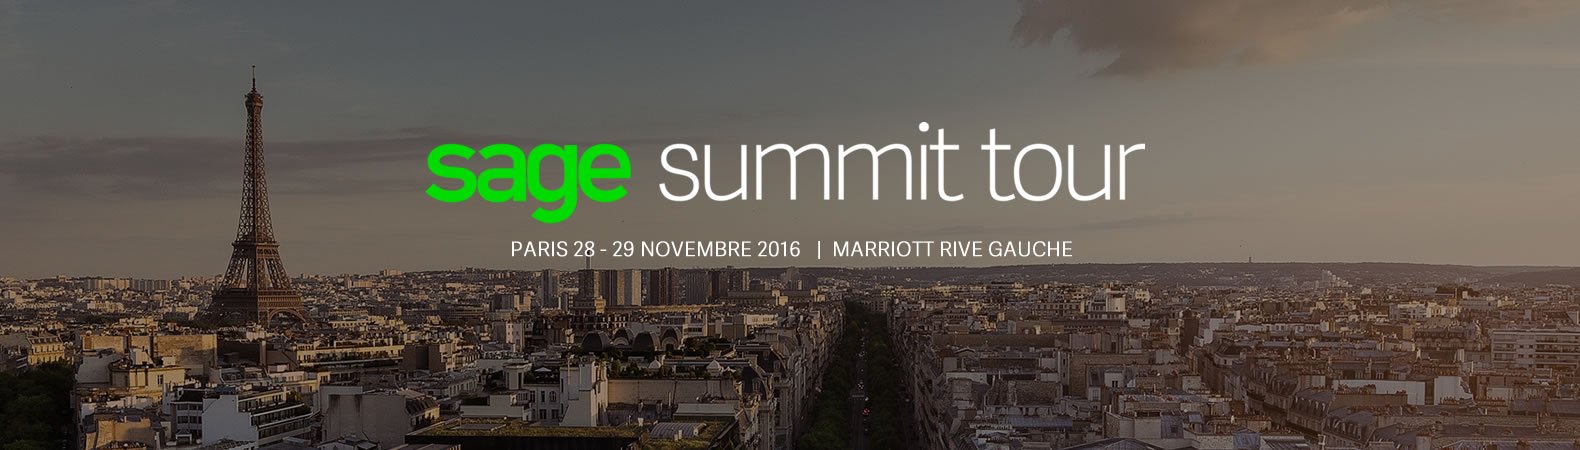 sage summit tour in Paris - register now